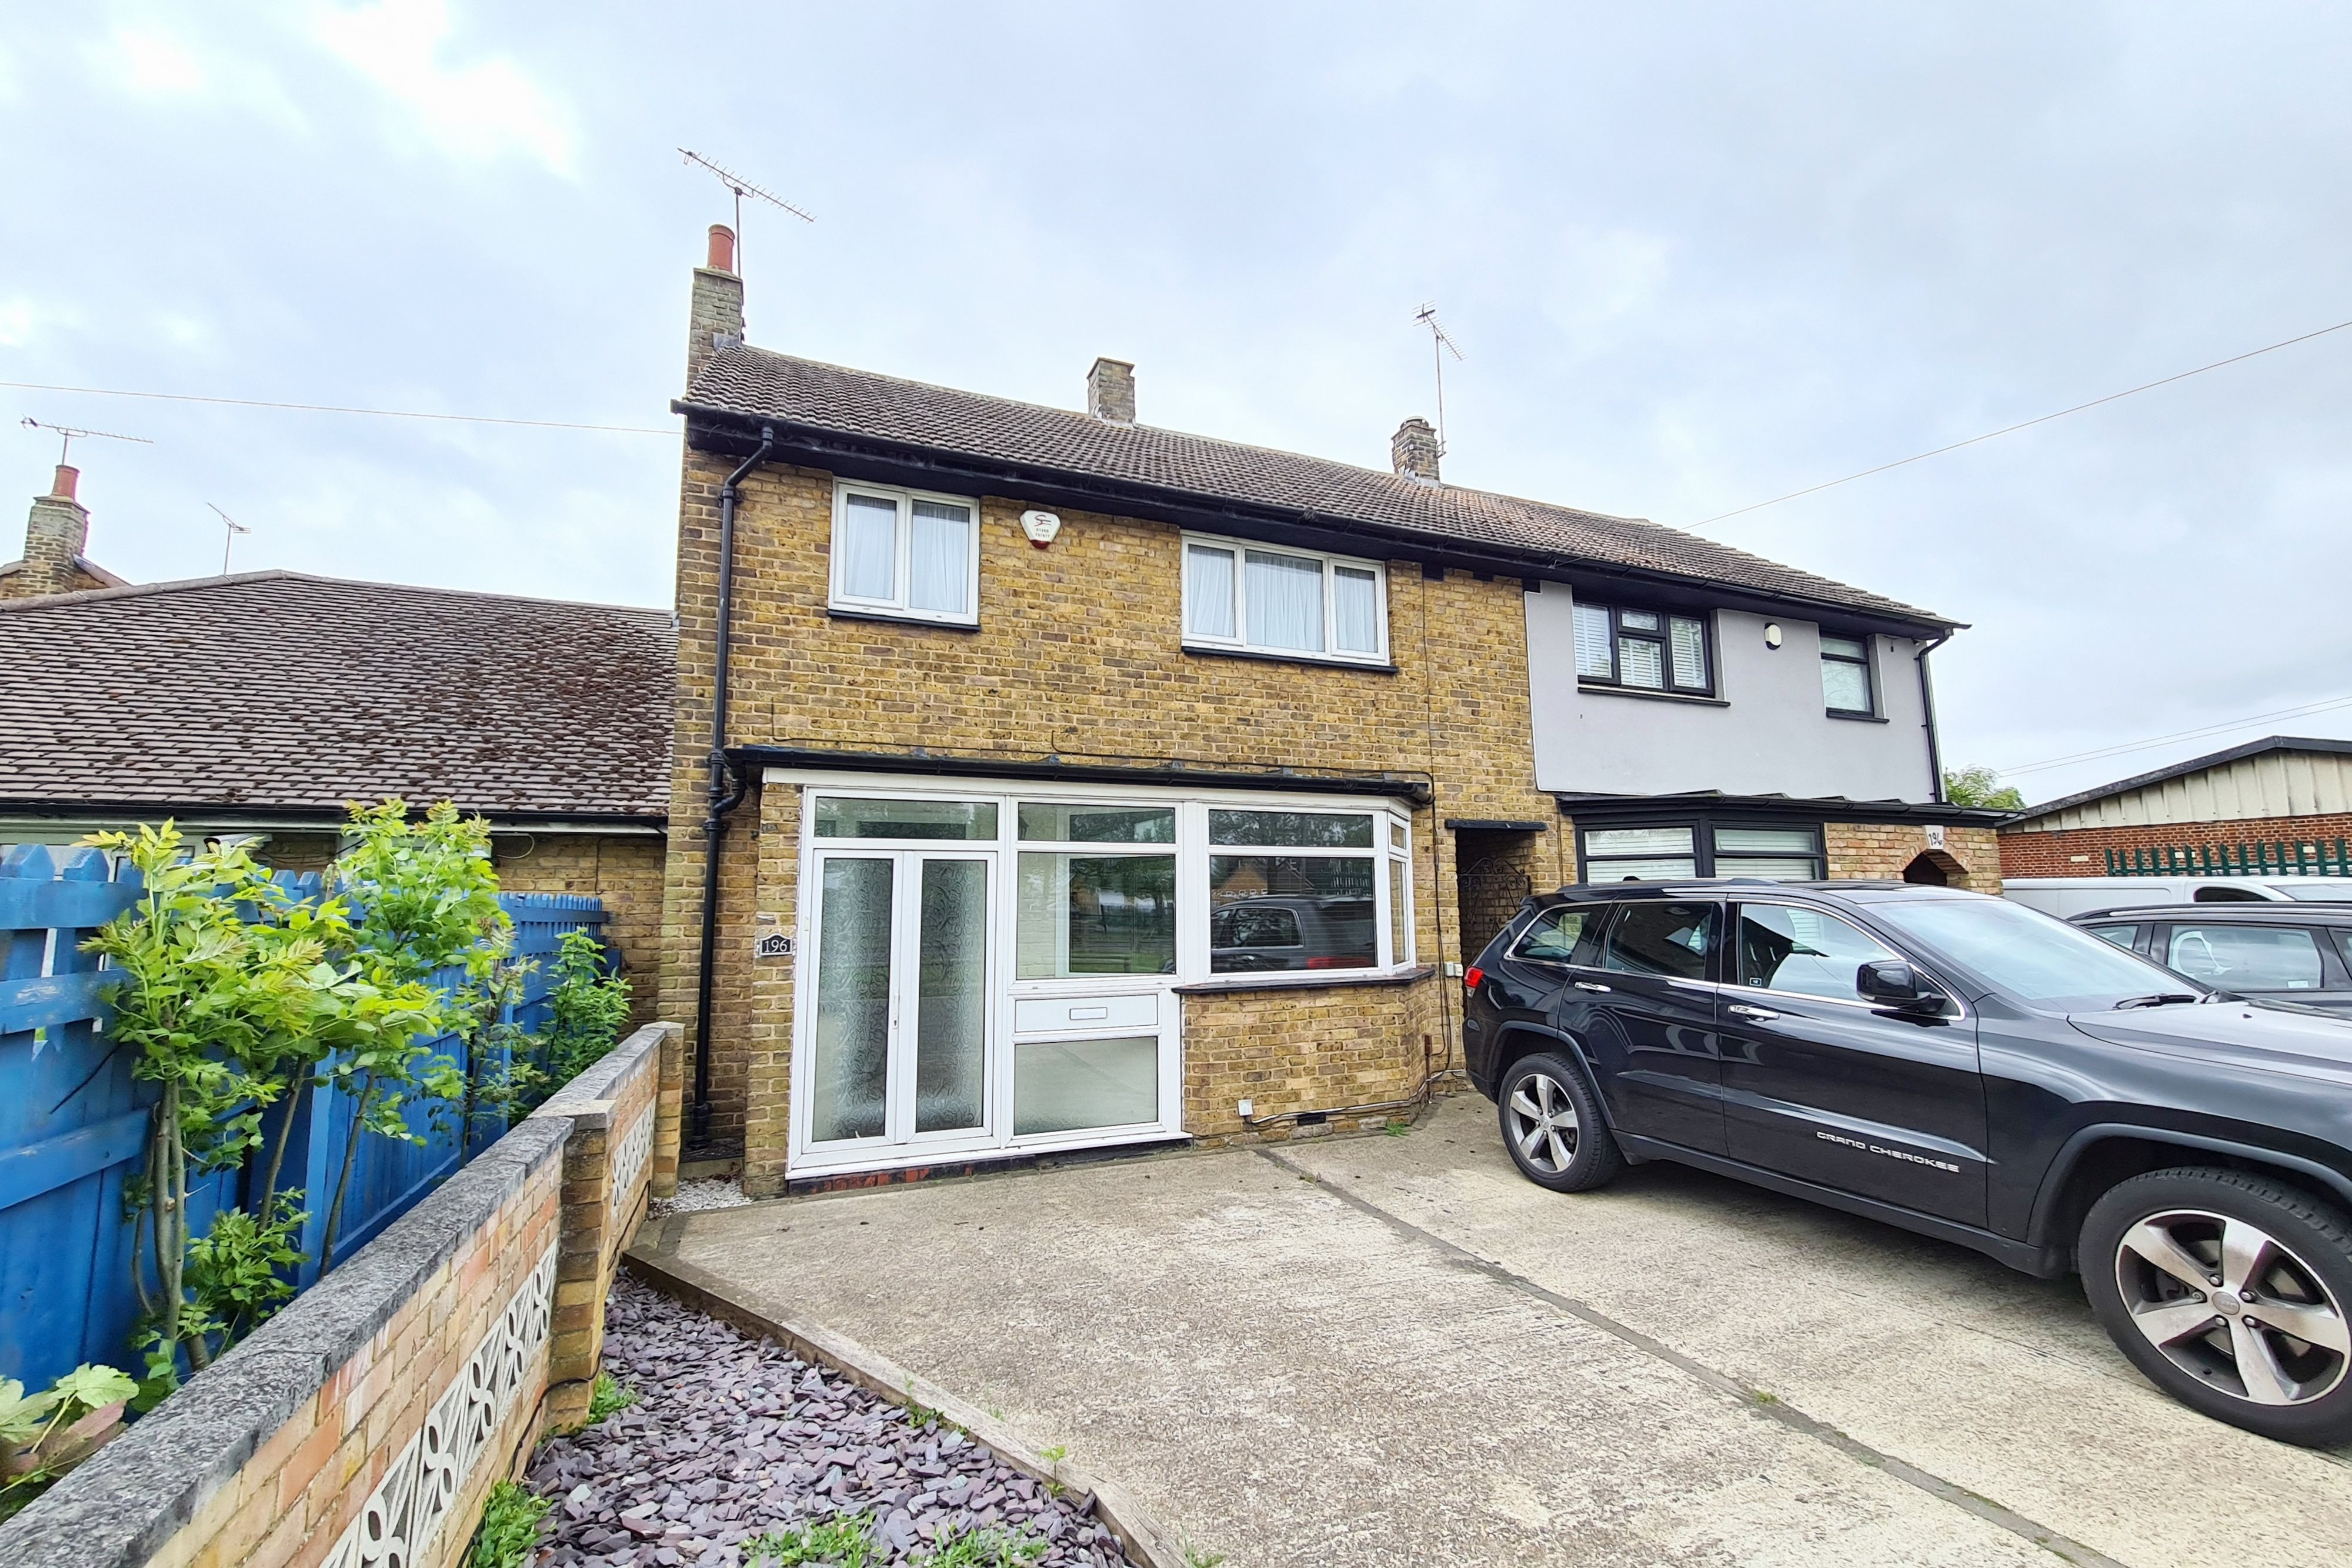 3 bed terraced house to rent in Eastern Avenue, Southend-on-Sea  - Property Image 1